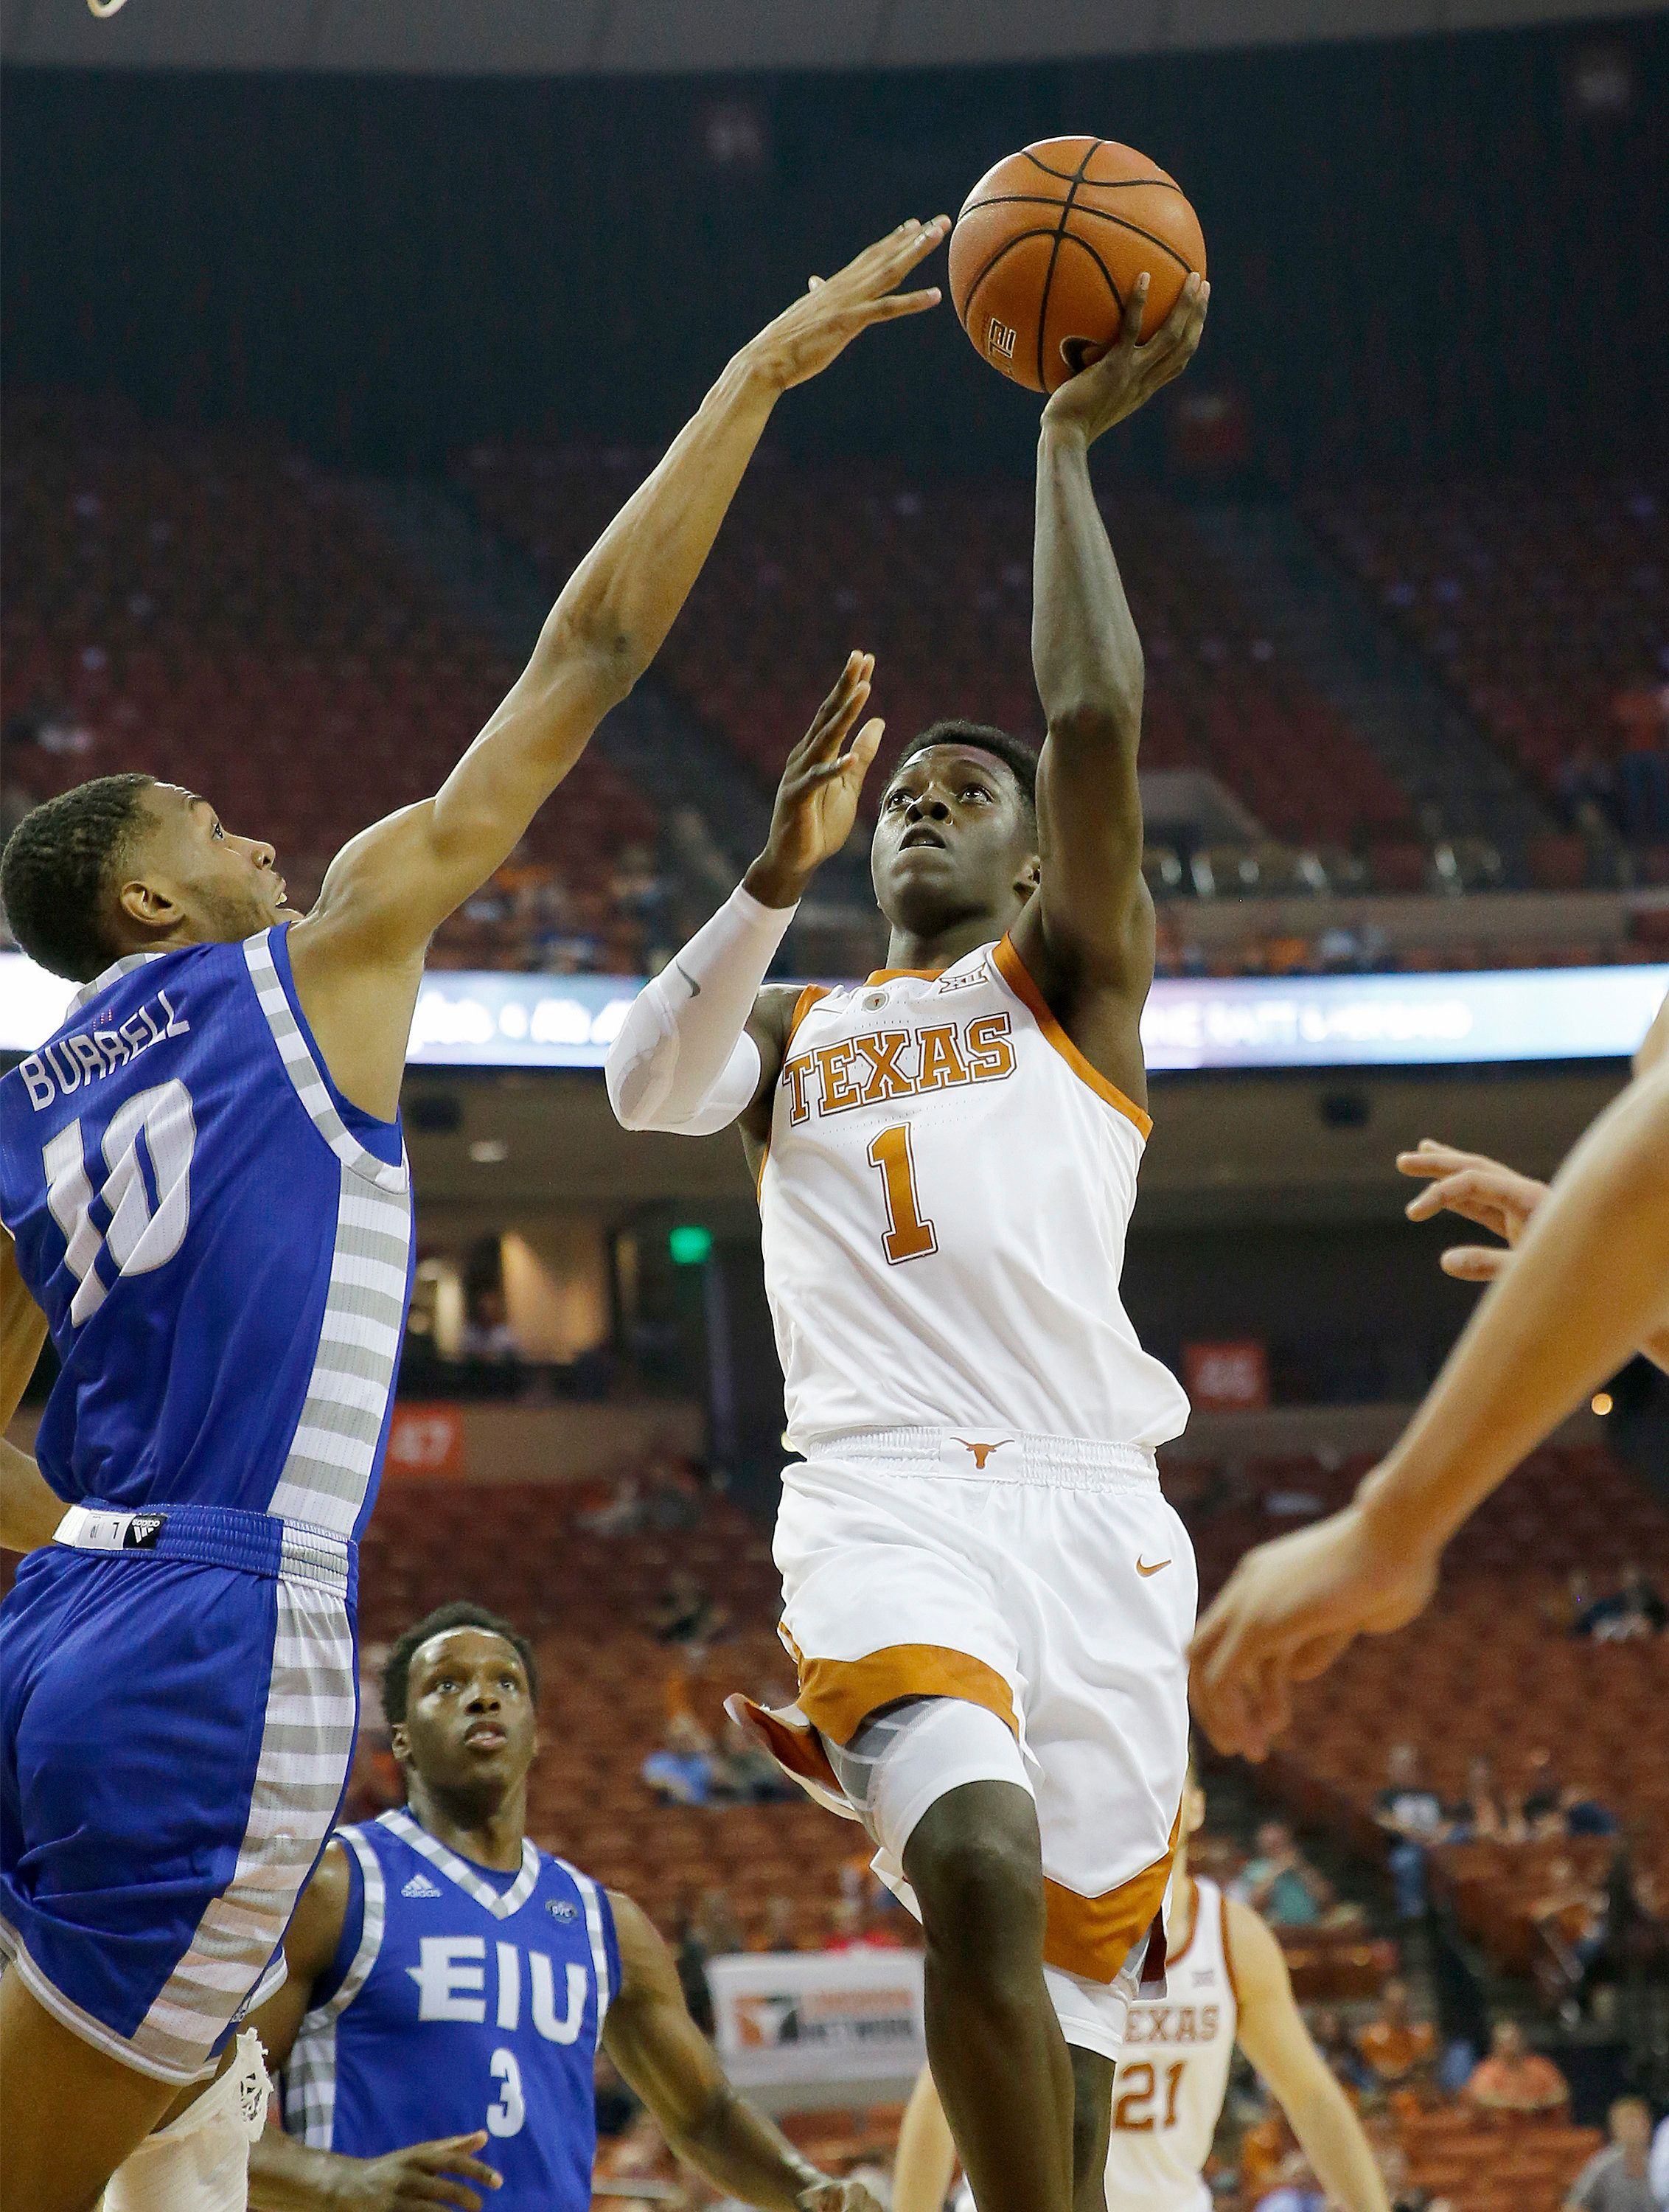 AUSTIN, TX - NOVEMBER 6: Andrew Jones #1 of the Texas Longhorns shoots over Cam Burrell #10 of the Eastern Illinois Panthers at the Frank Erwin Center on November 6, 2018 in Austin, Texas. (Photo by Chris Covatta/Getty Images)